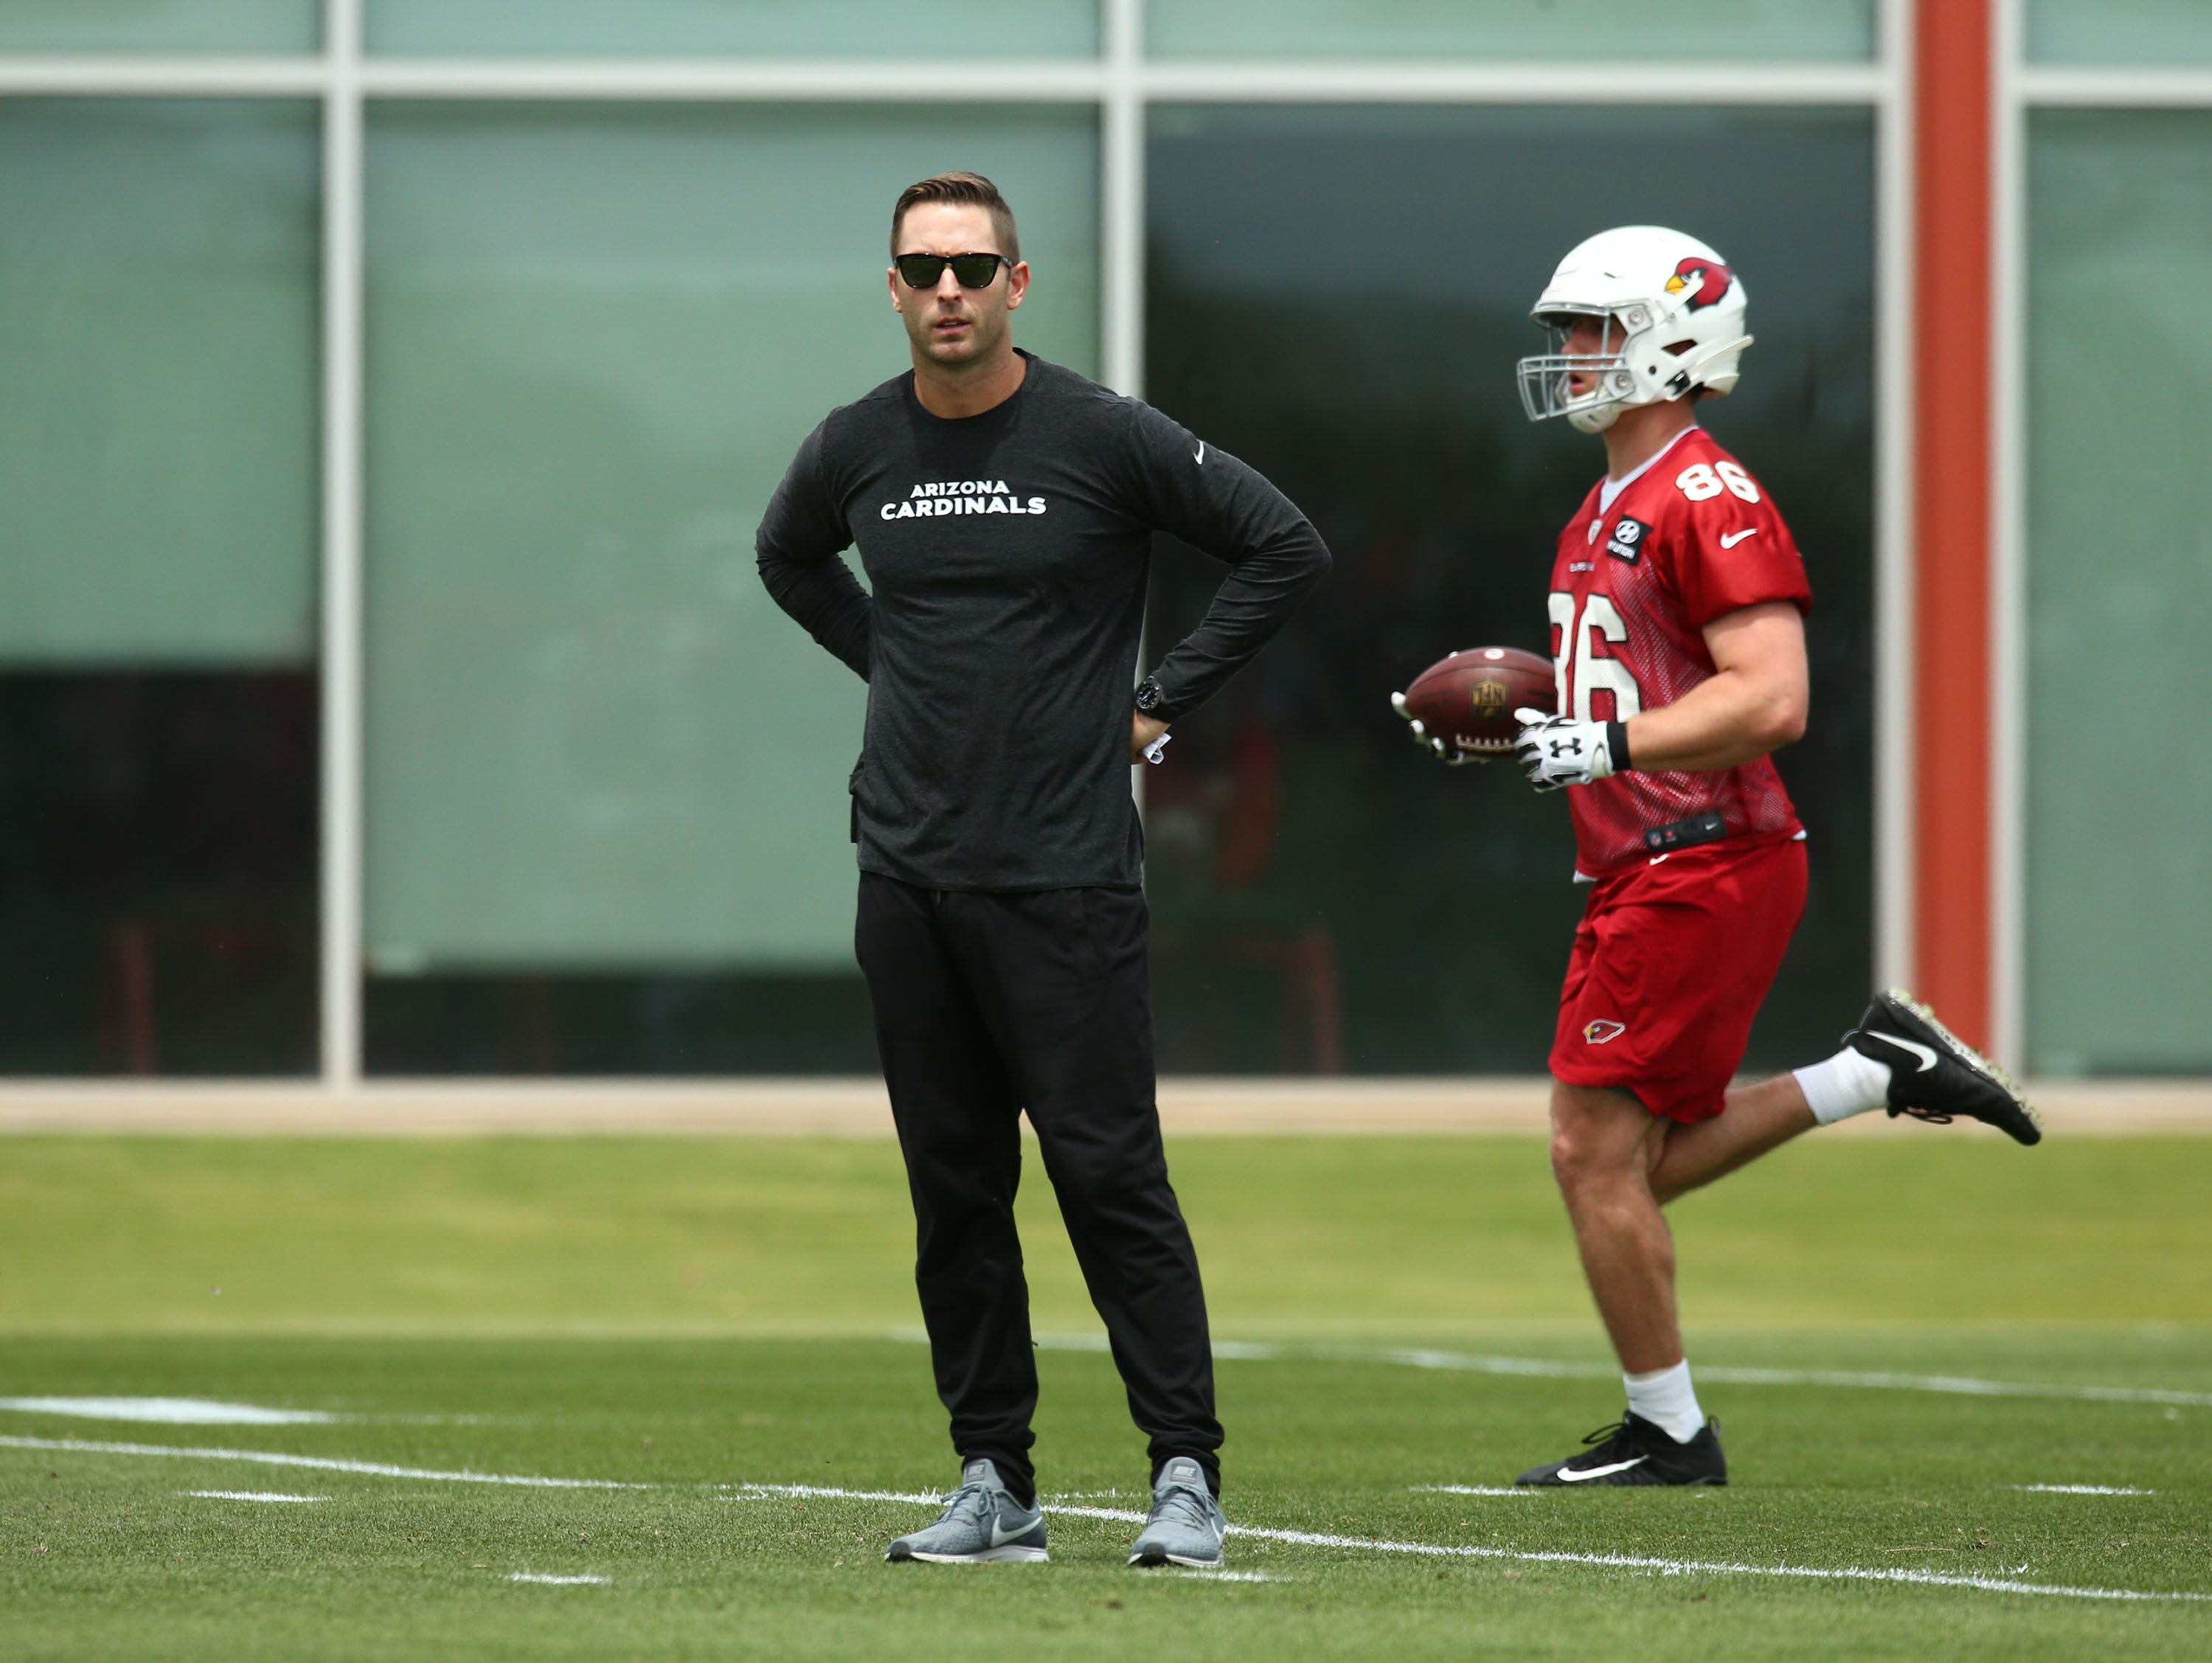 Cardinals head coach Kliff Kingsbury looks on during the first day of rookie minicamp on May 10.